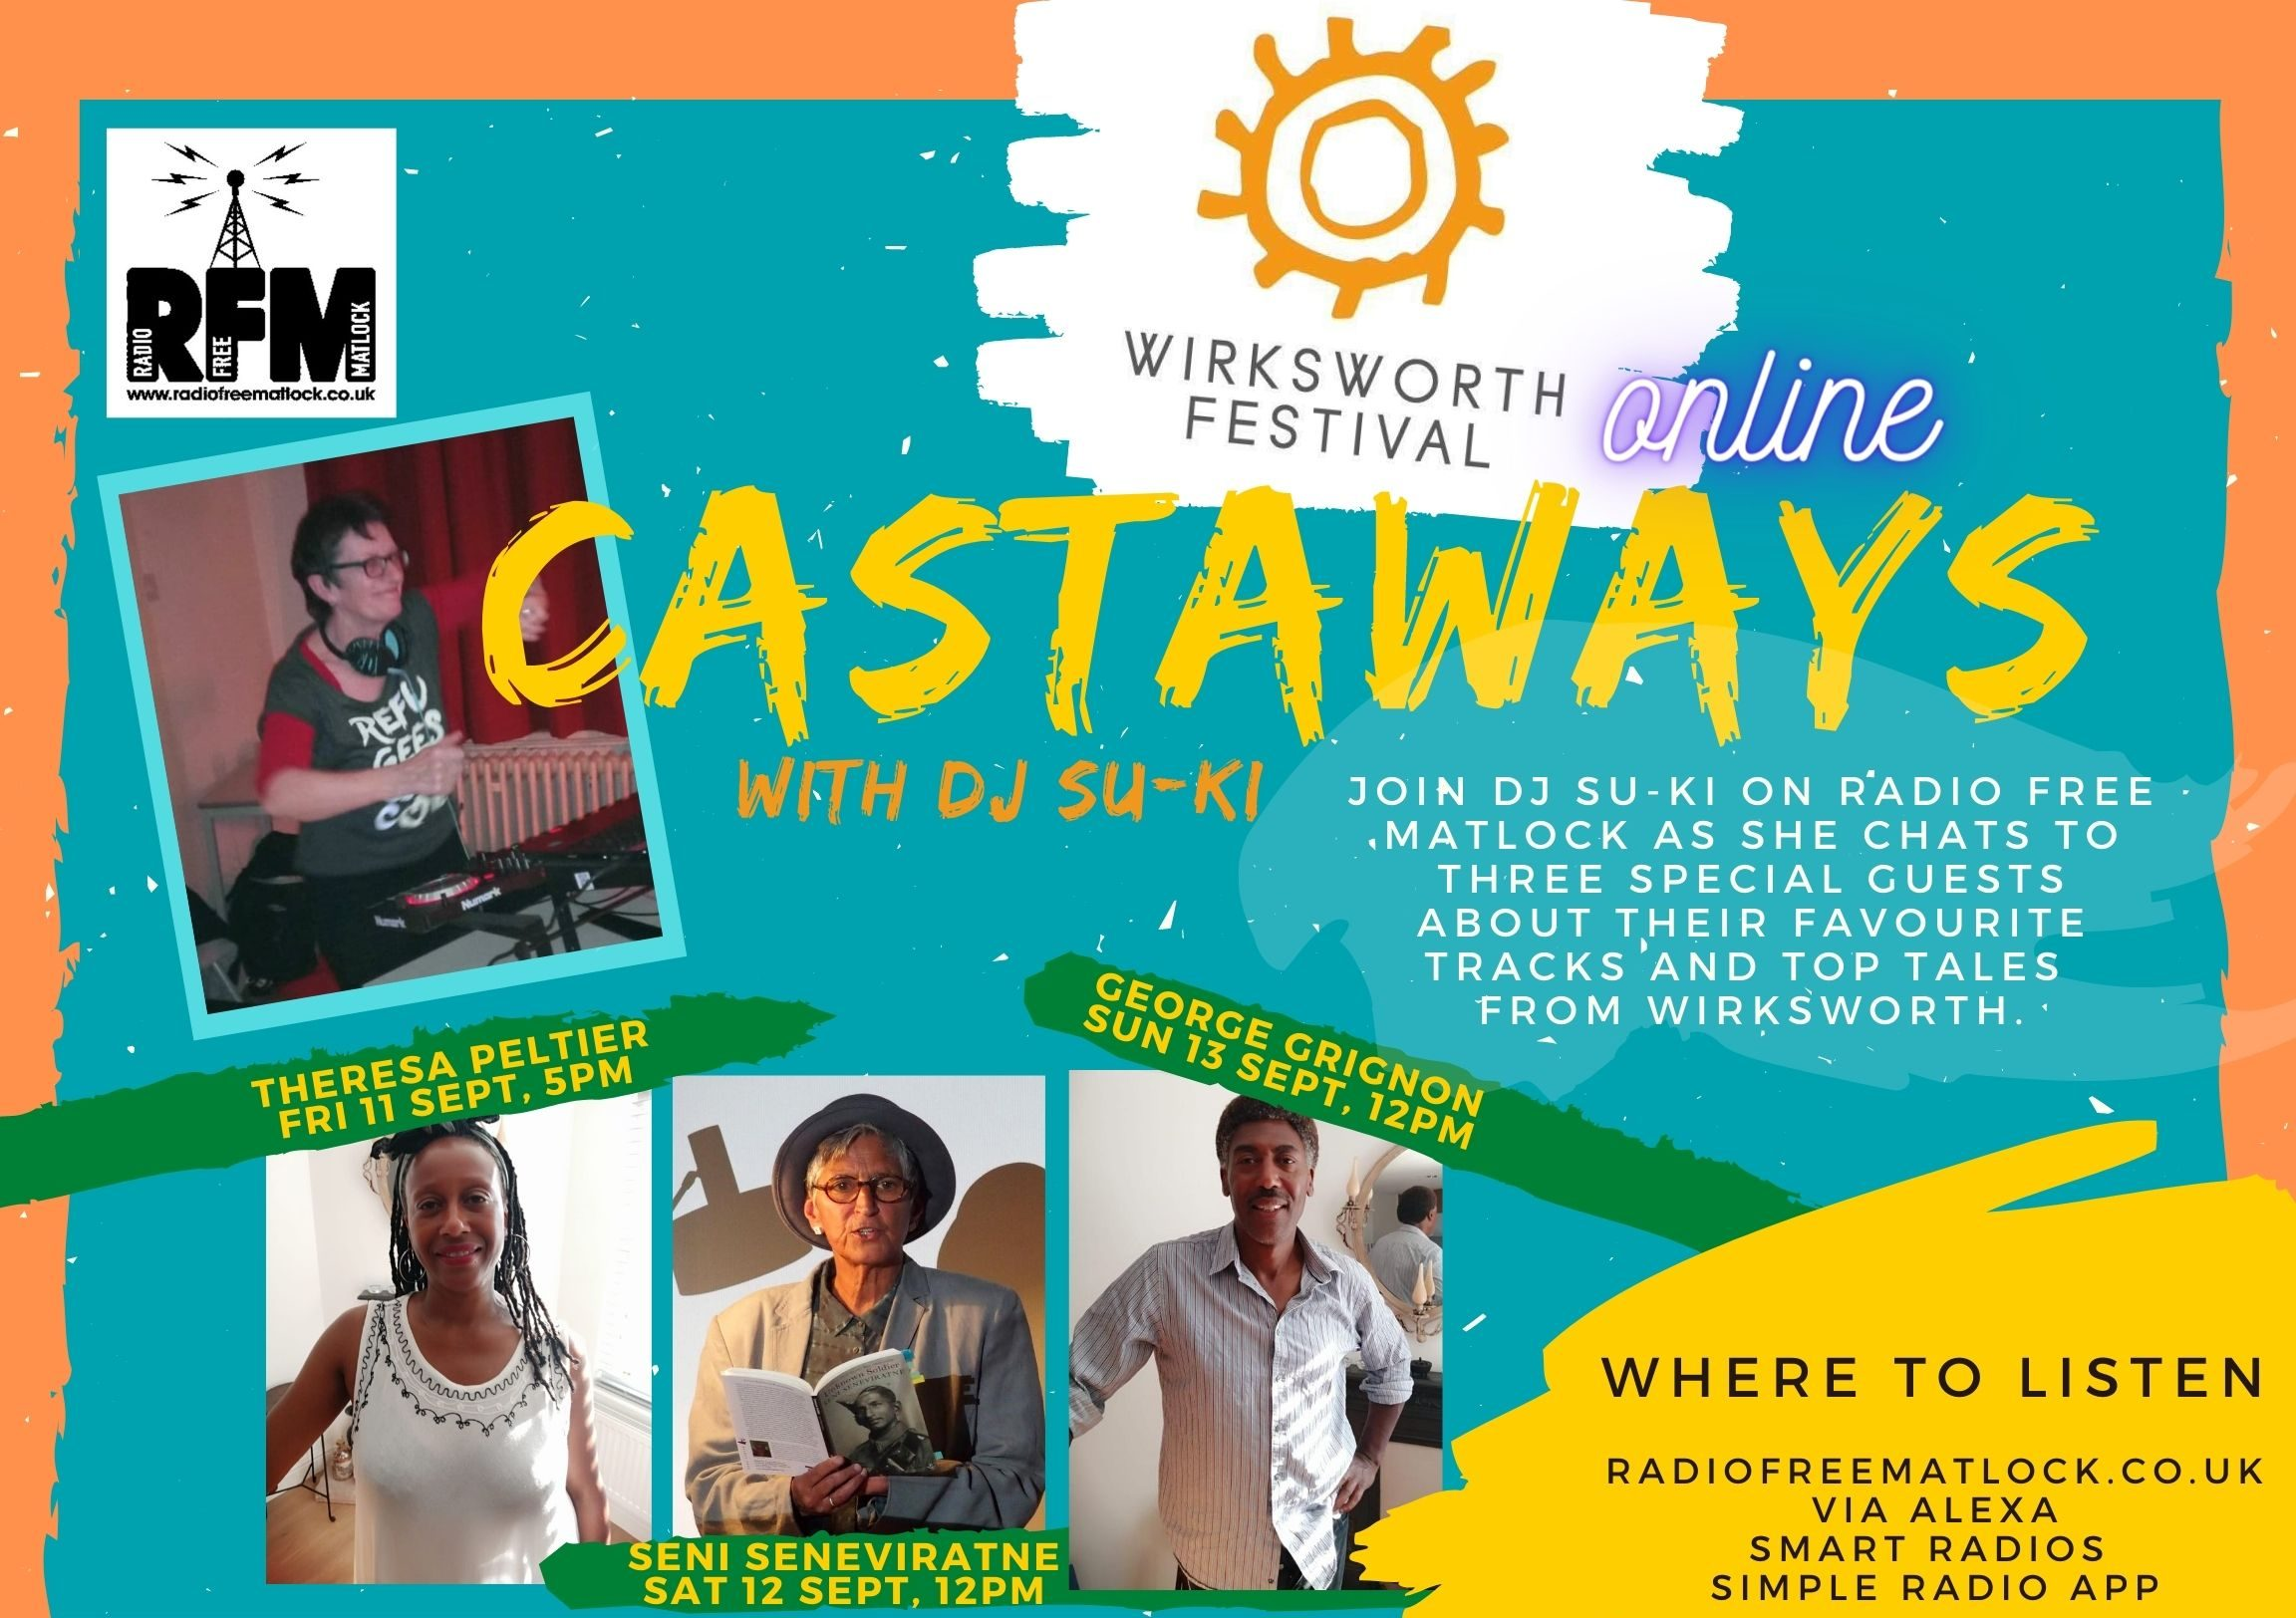 Castaways from Wirksworth with DJ Su-ki